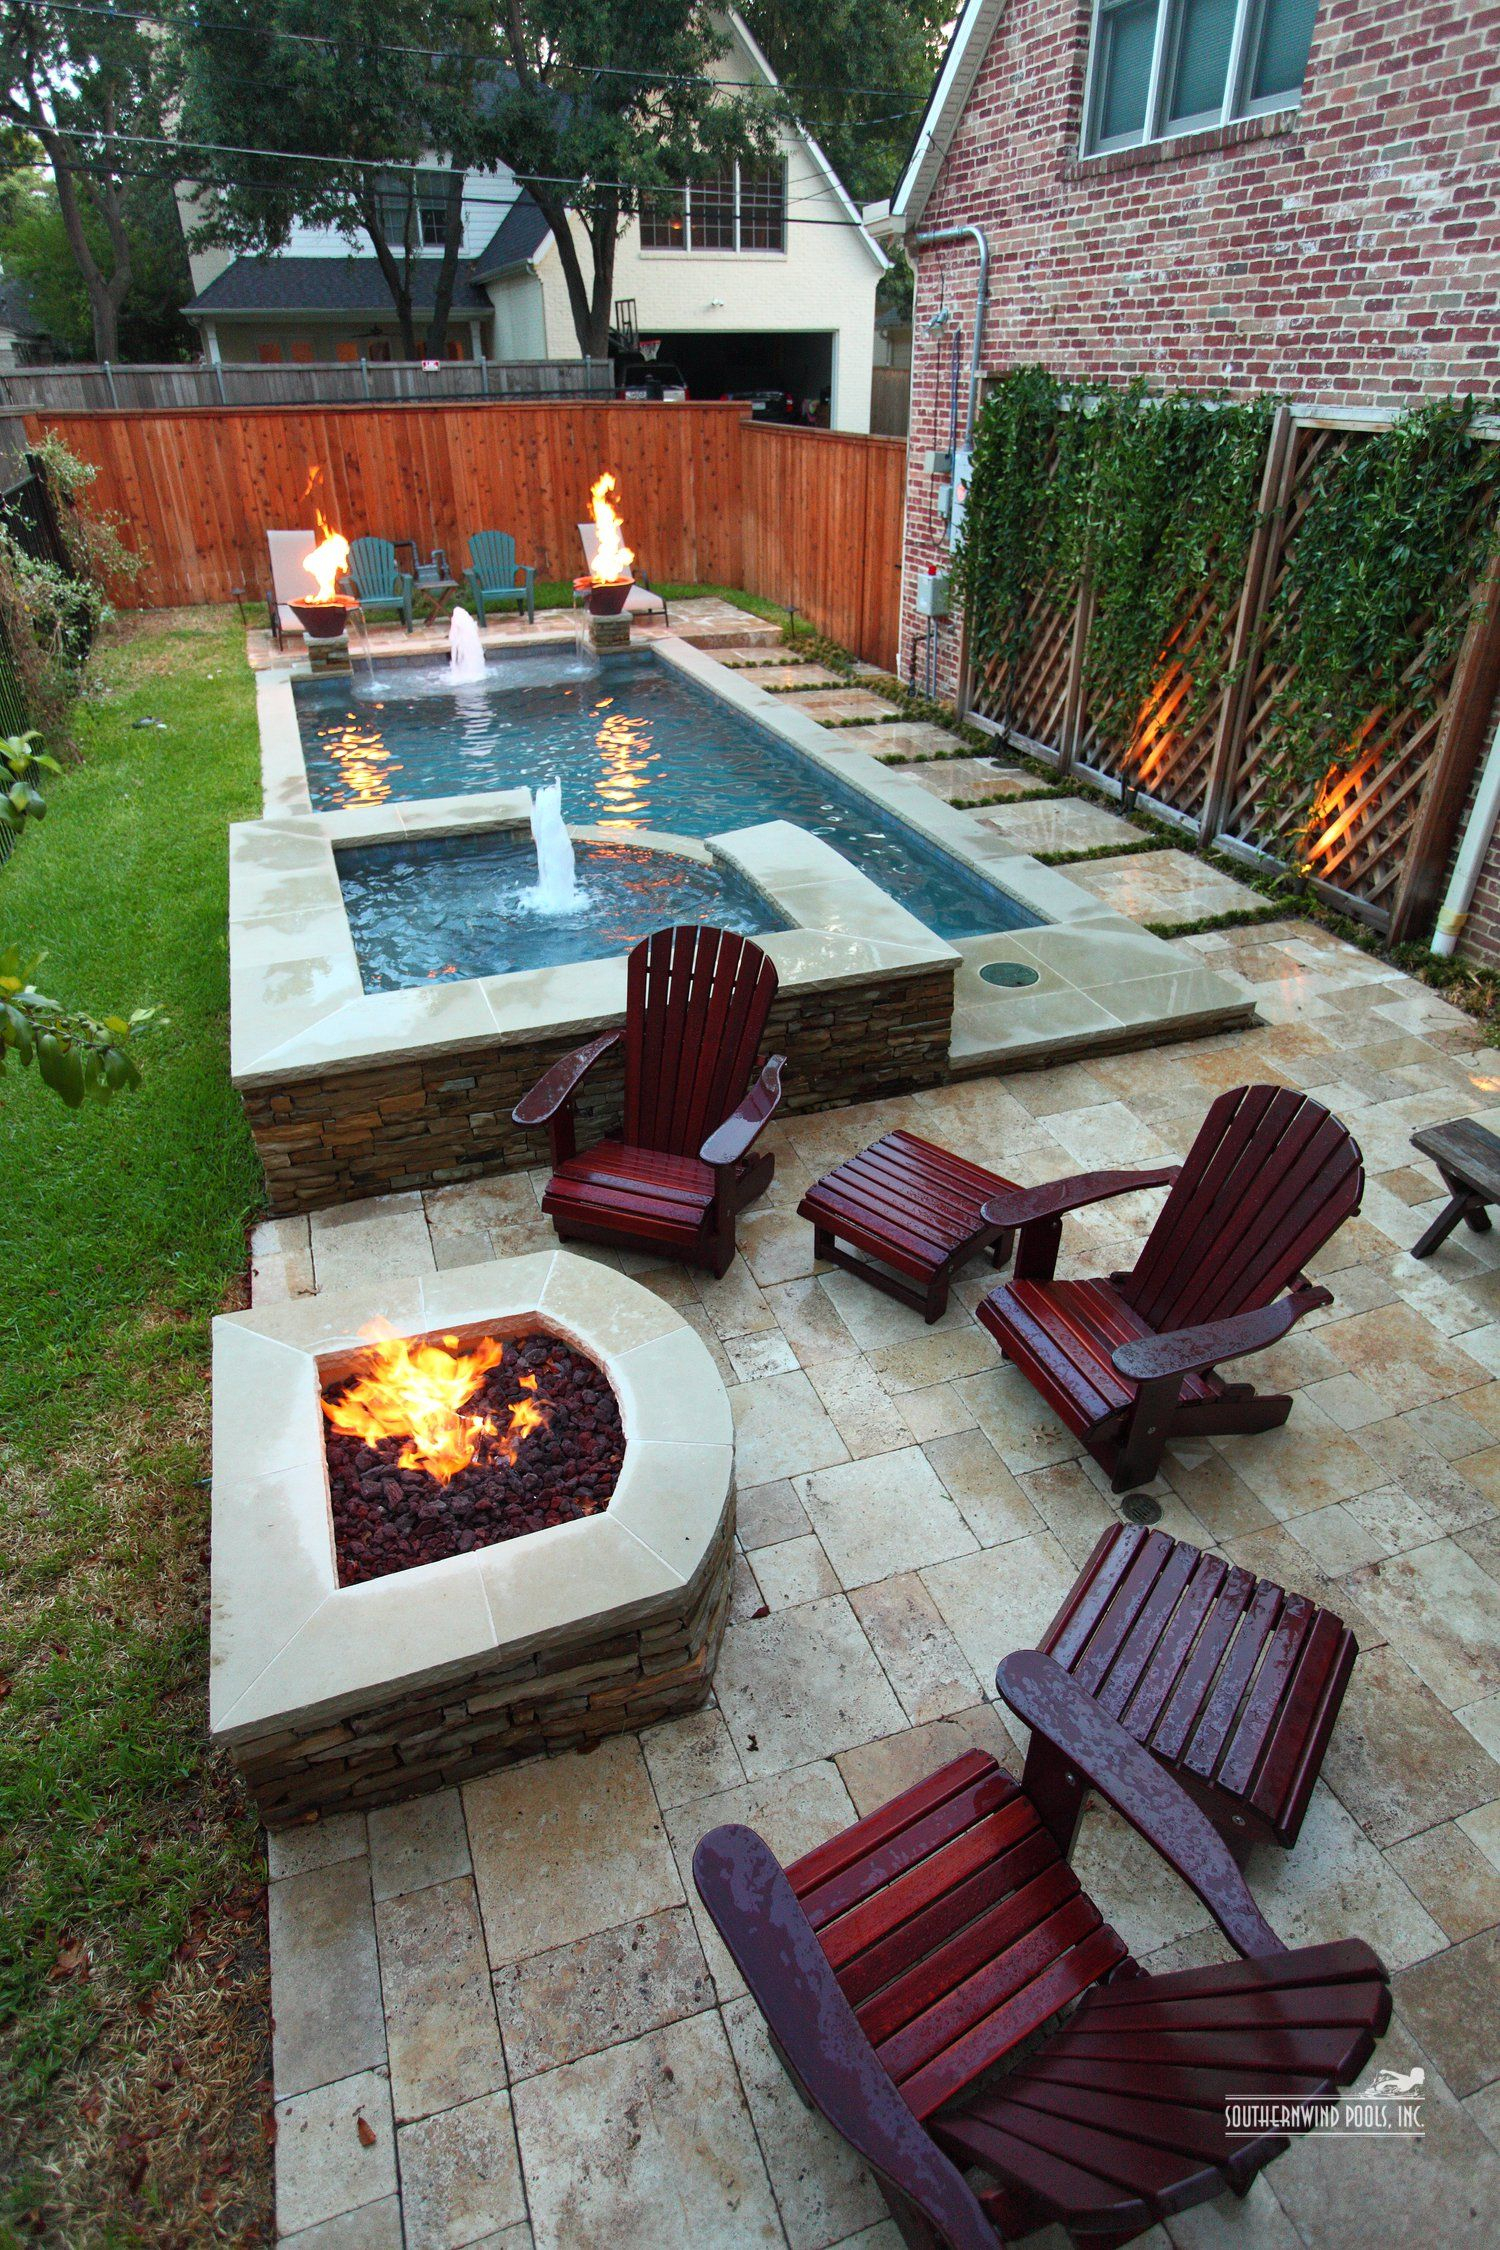 Awesome Narrow Pool With Hot Tub And Firepit Outdoor Ideas with 14 Awesome Designs of How to Craft Narrow Backyard Ideas